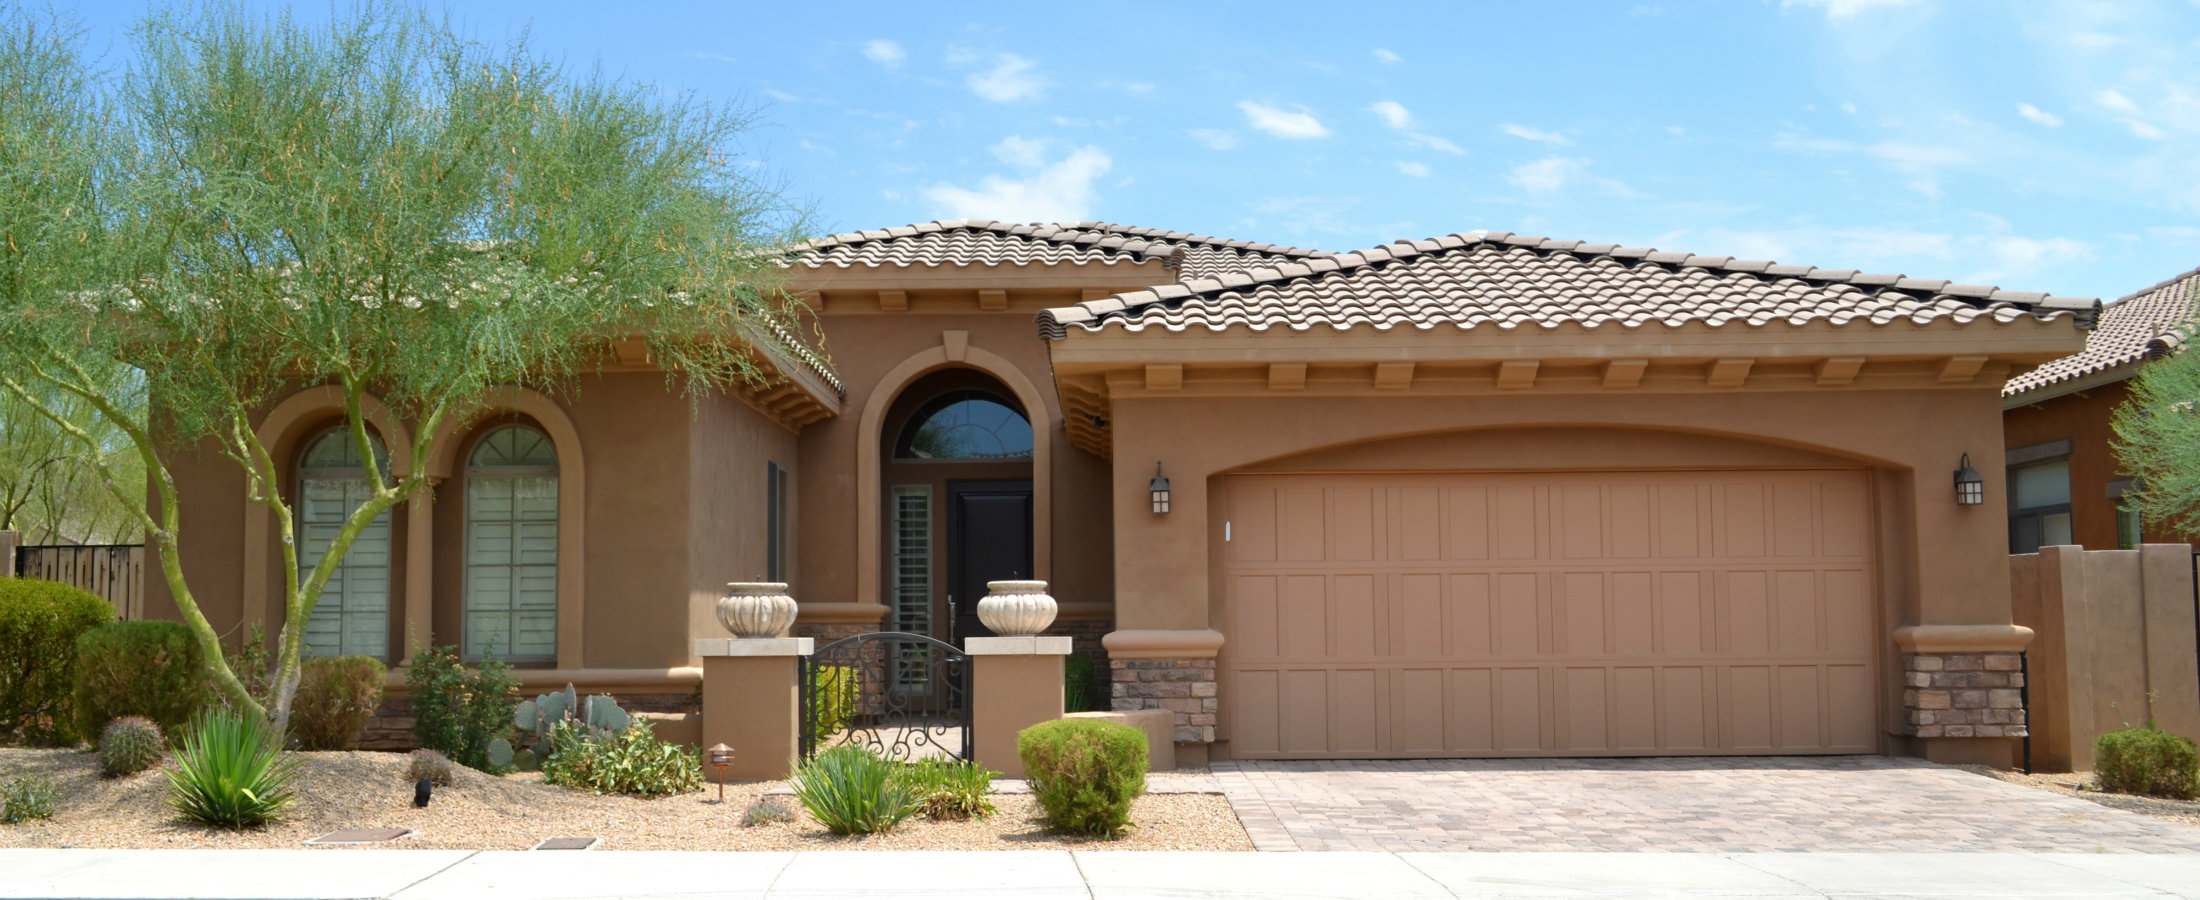 Phoenix Real Estate and Community News